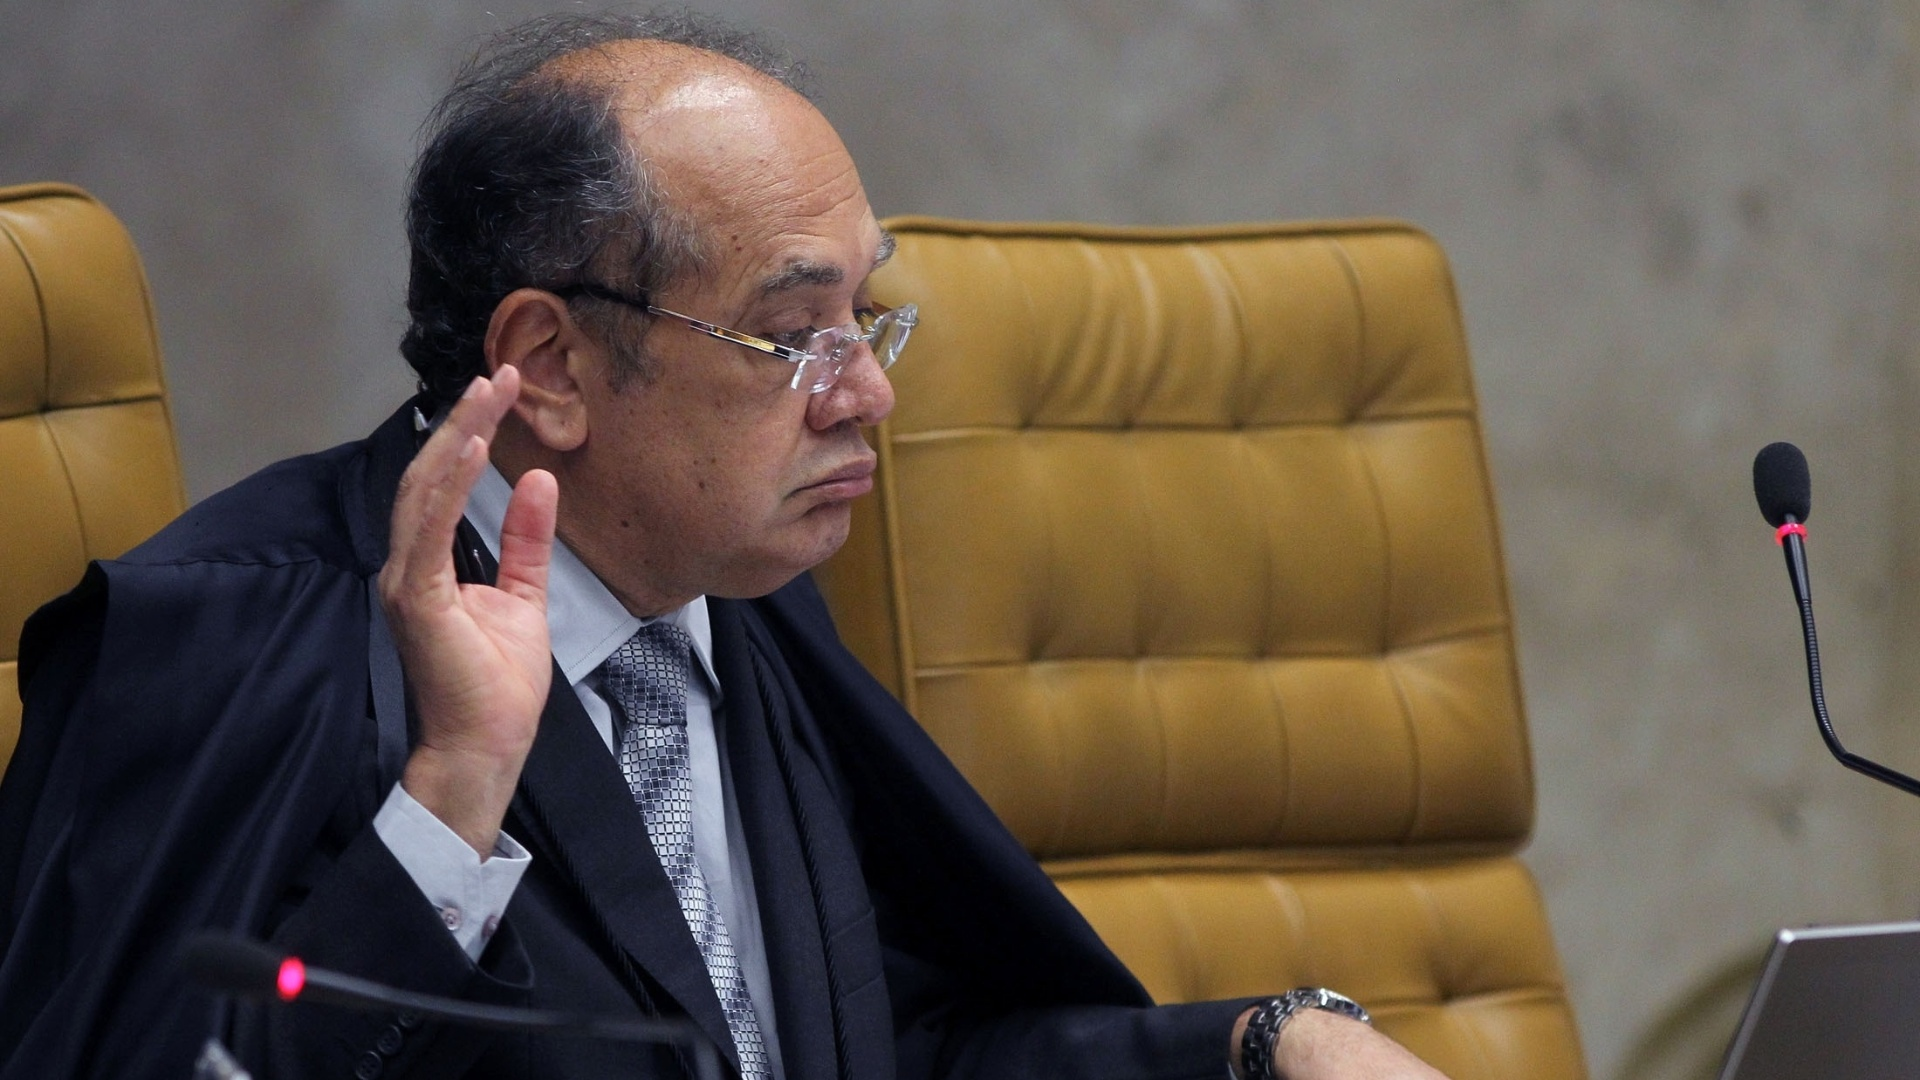 28.nov.2012 - O ministro do STF Gilmar Mendes acompanha sesso de julgamento do processo do mensalo. Nesta quarta-feira, os ministros do STF fixaram a pena do ex-deputado federal Roberto Jefferson (PTB-RJ), delator do esquema, em 7 anos e 14 dias de priso, por corrupo passiva e lavagem de dinheiro